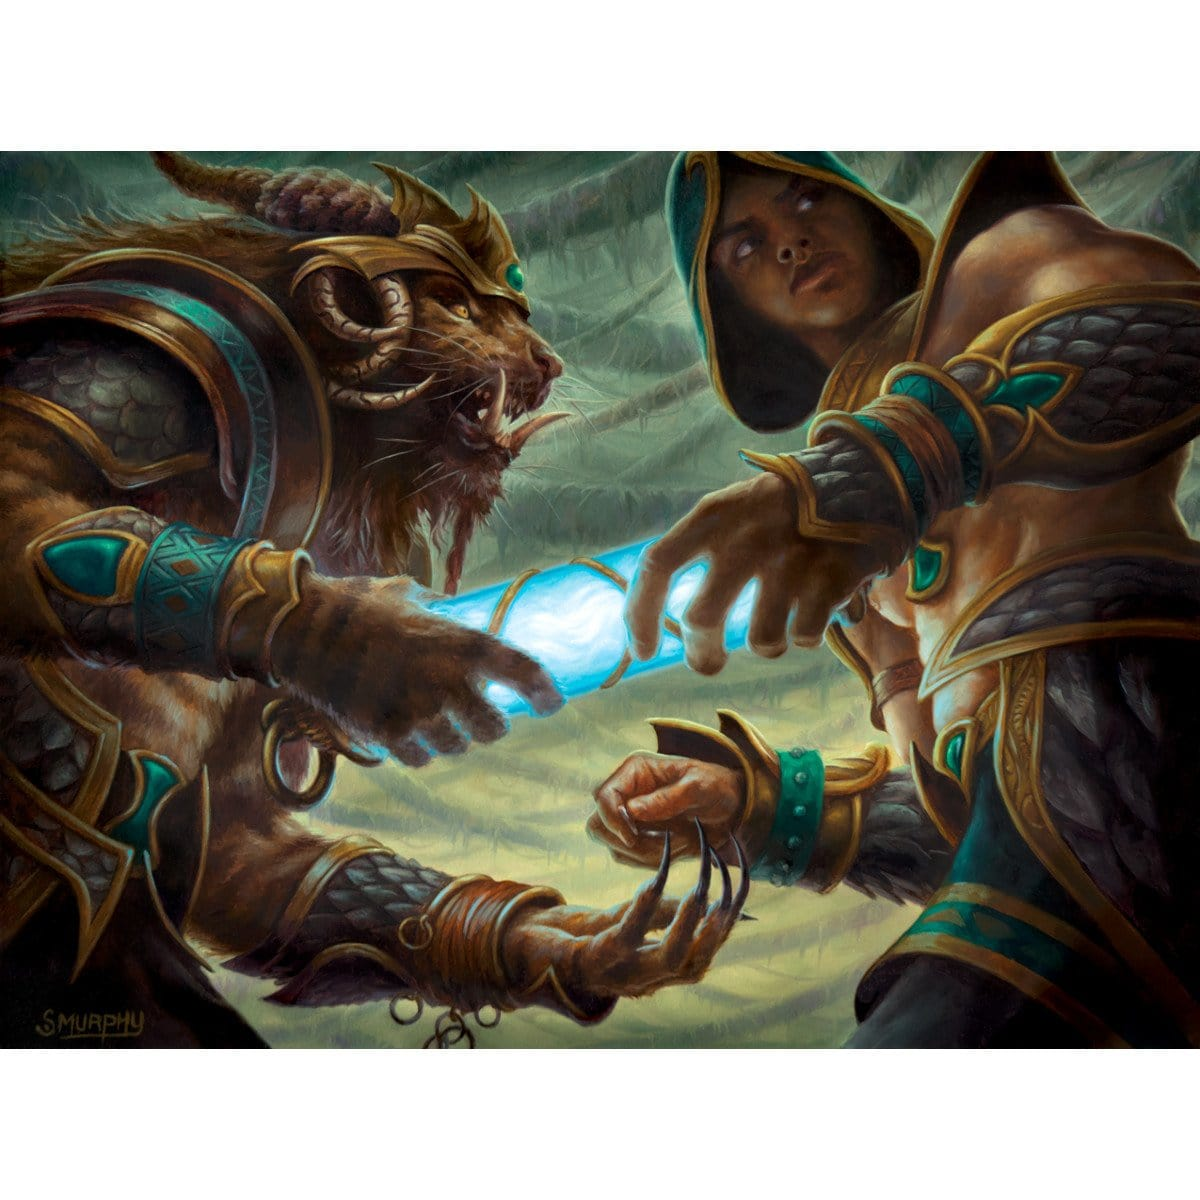 Dark Deal Print - Print - Original Magic Art - Accessories for Magic the Gathering and other card games